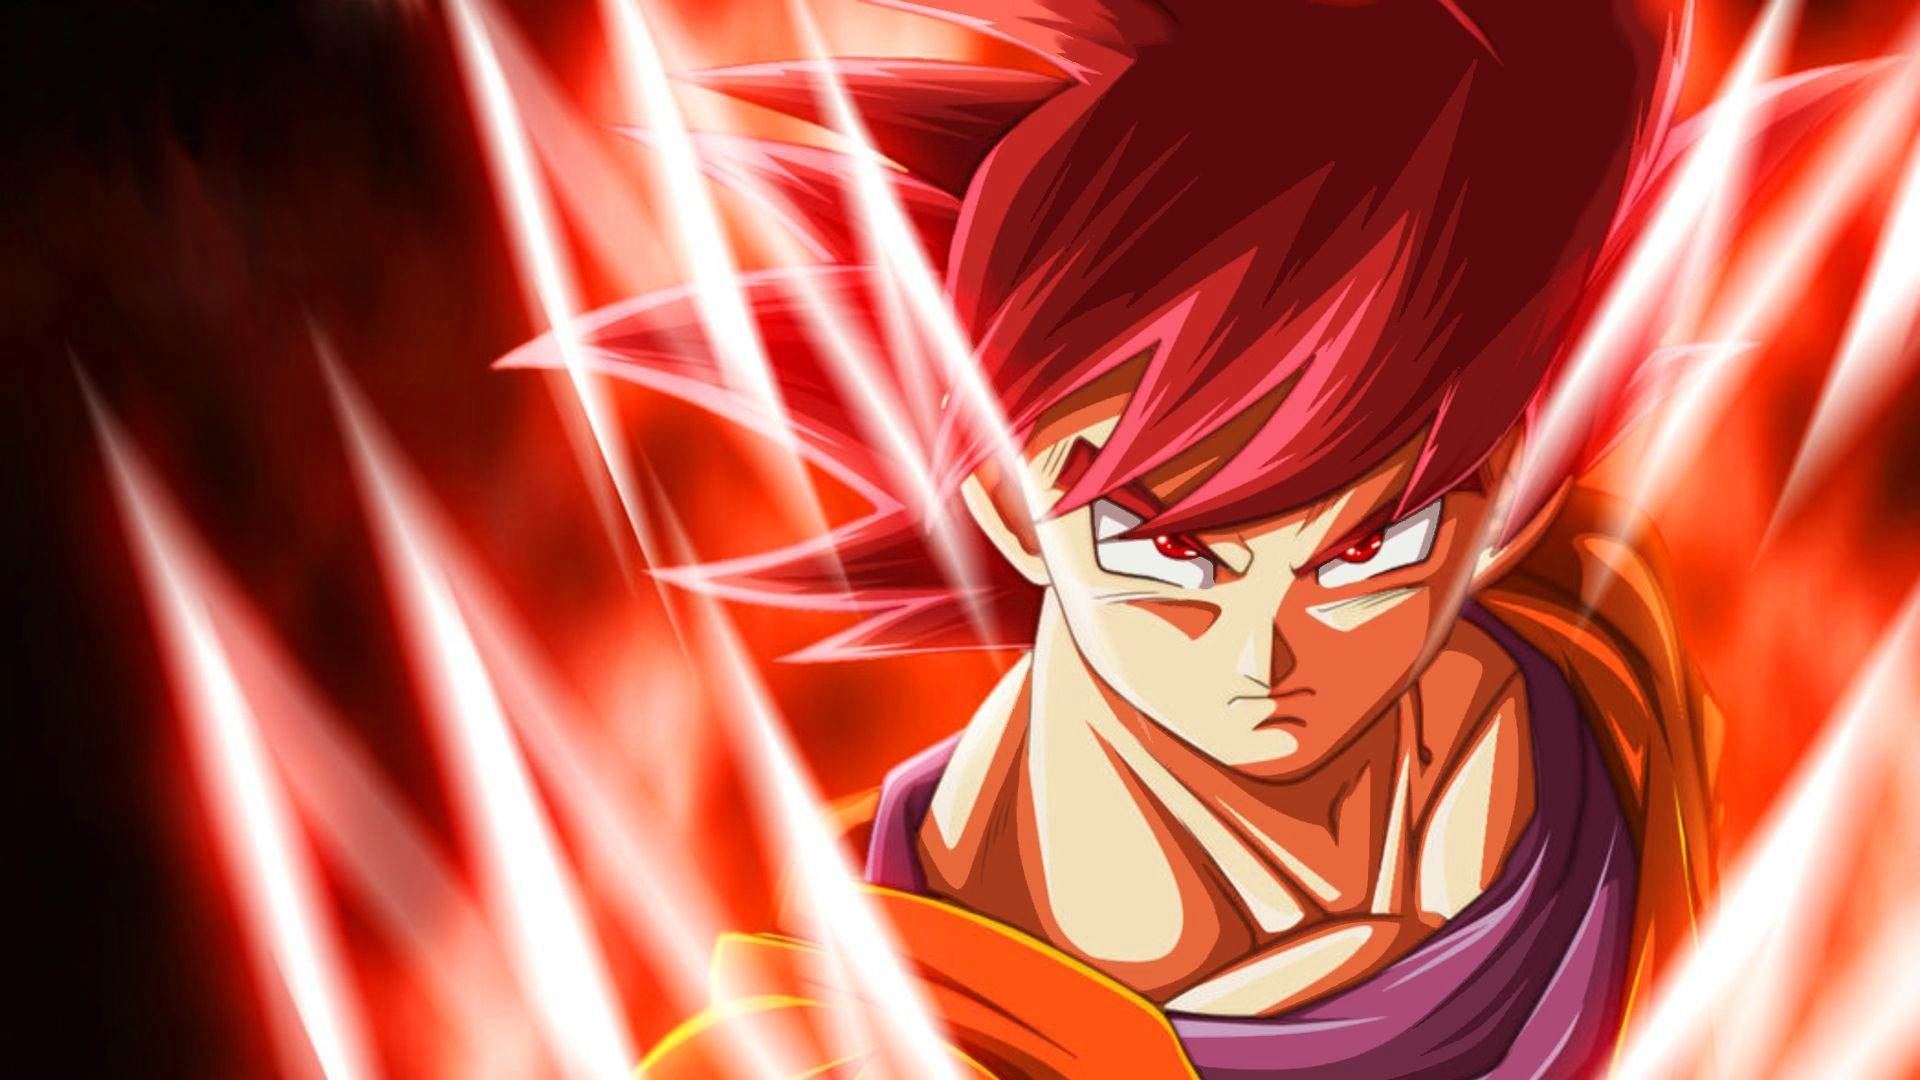 Goku Super Saiyan 4 Wallpaper (66+ images) Dragon Ball Z Goku Super Saiyan 6 Wallpapers